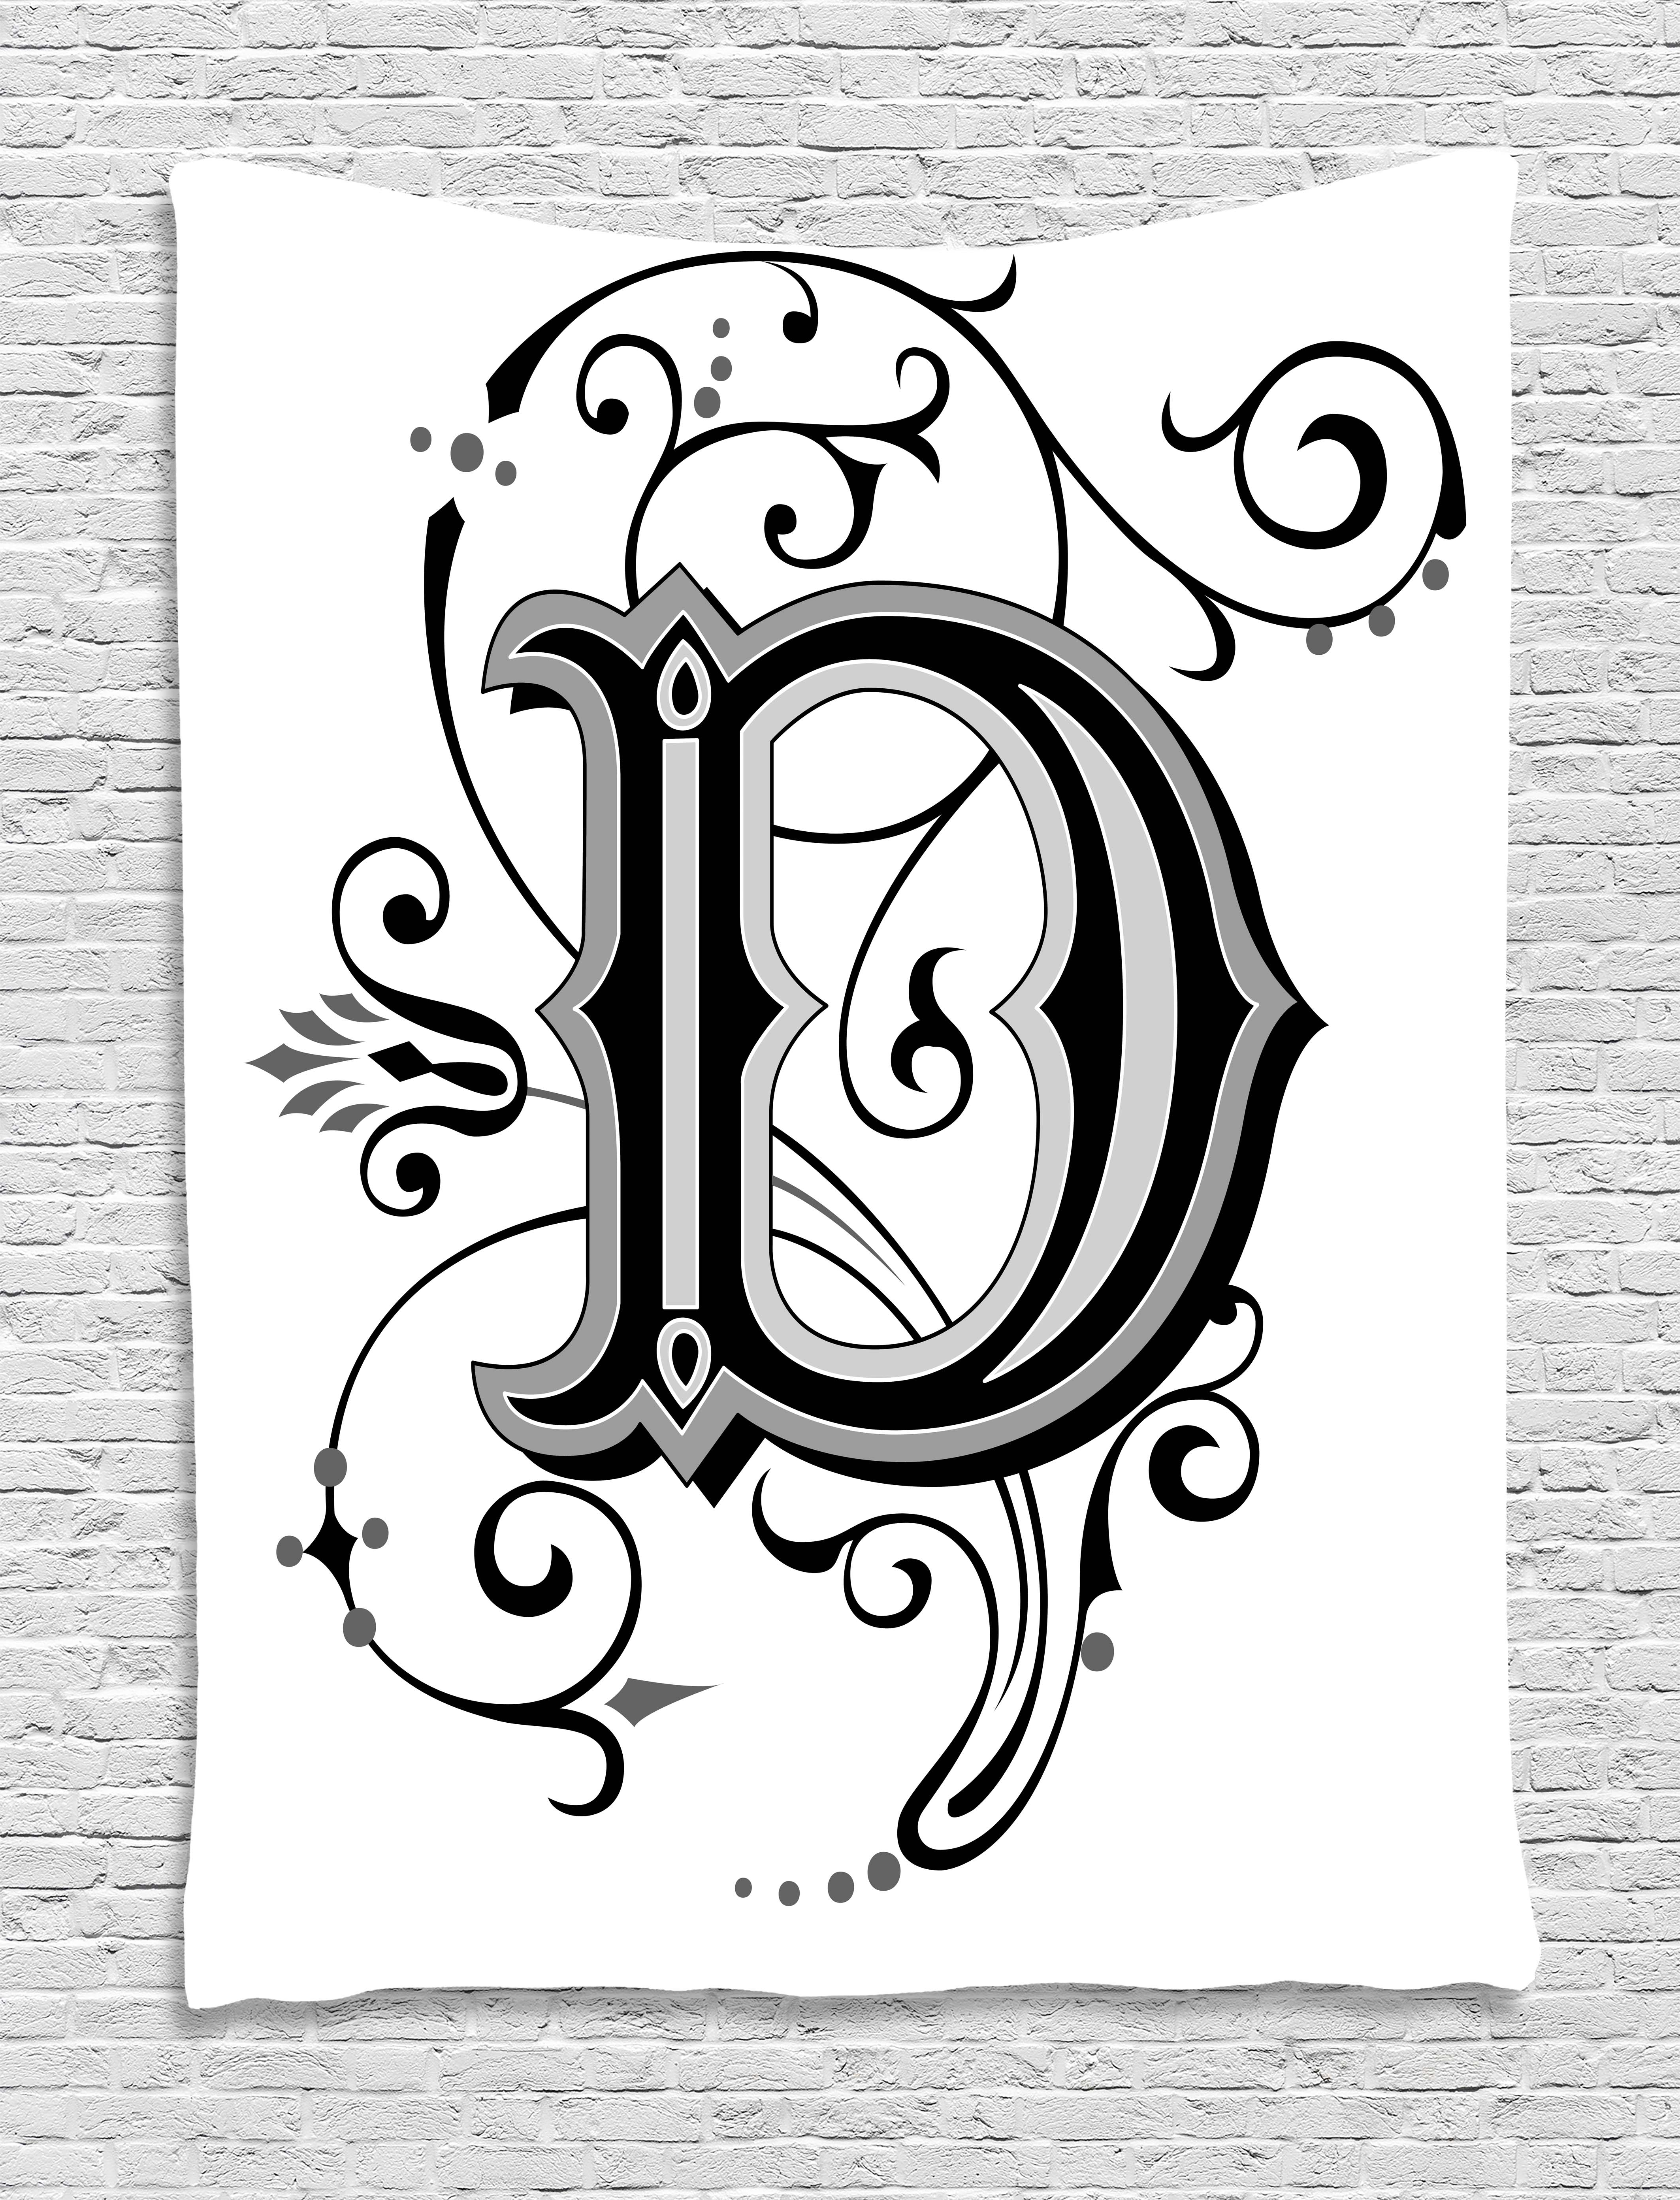 pictures for letter d letter d coloring pages to download and print for free d letter for pictures